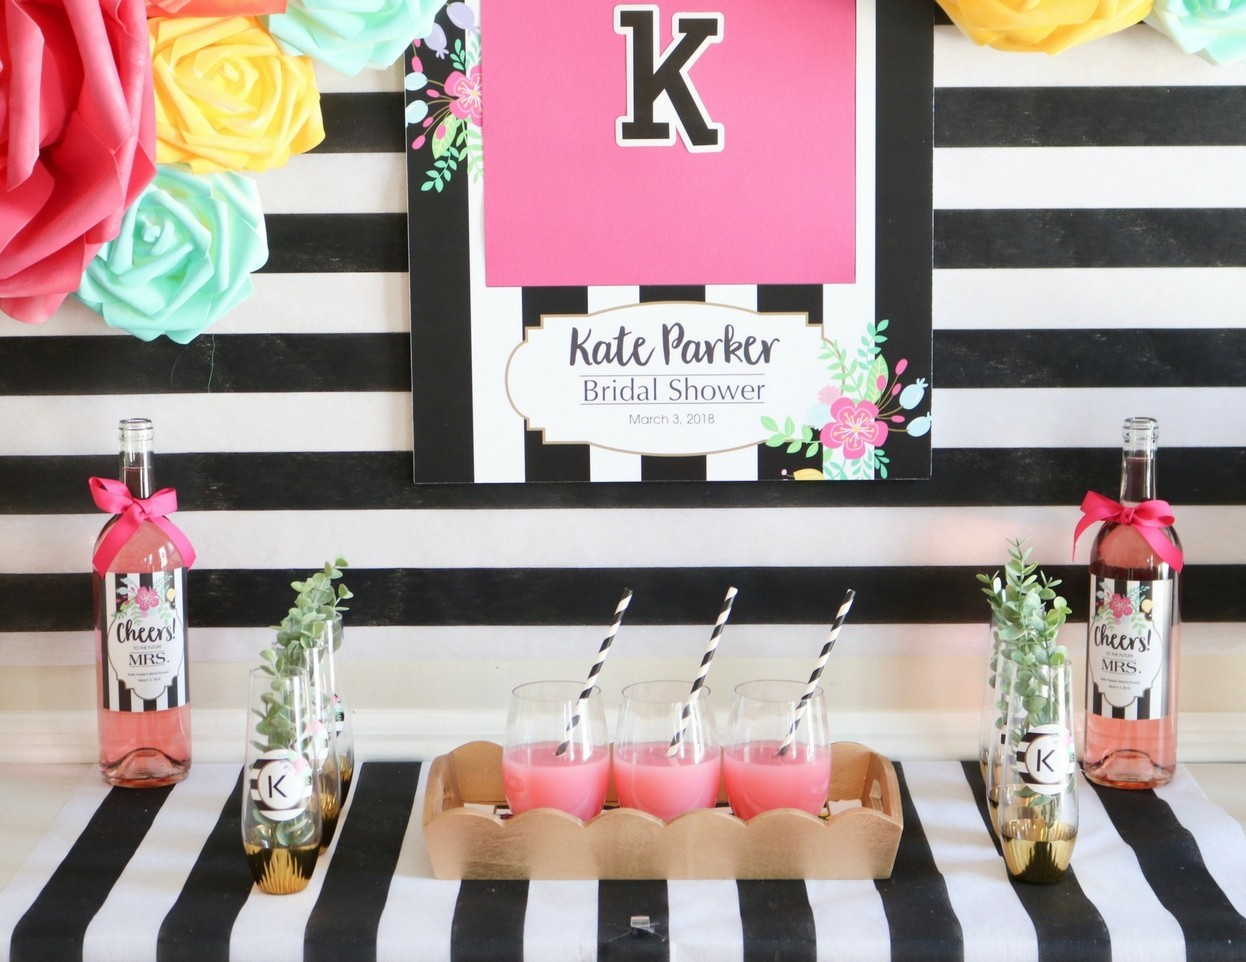 Make A Bridal Shower Backdrop & Buffet | Fun365 Within Six Stripes Buffets (View 22 of 30)